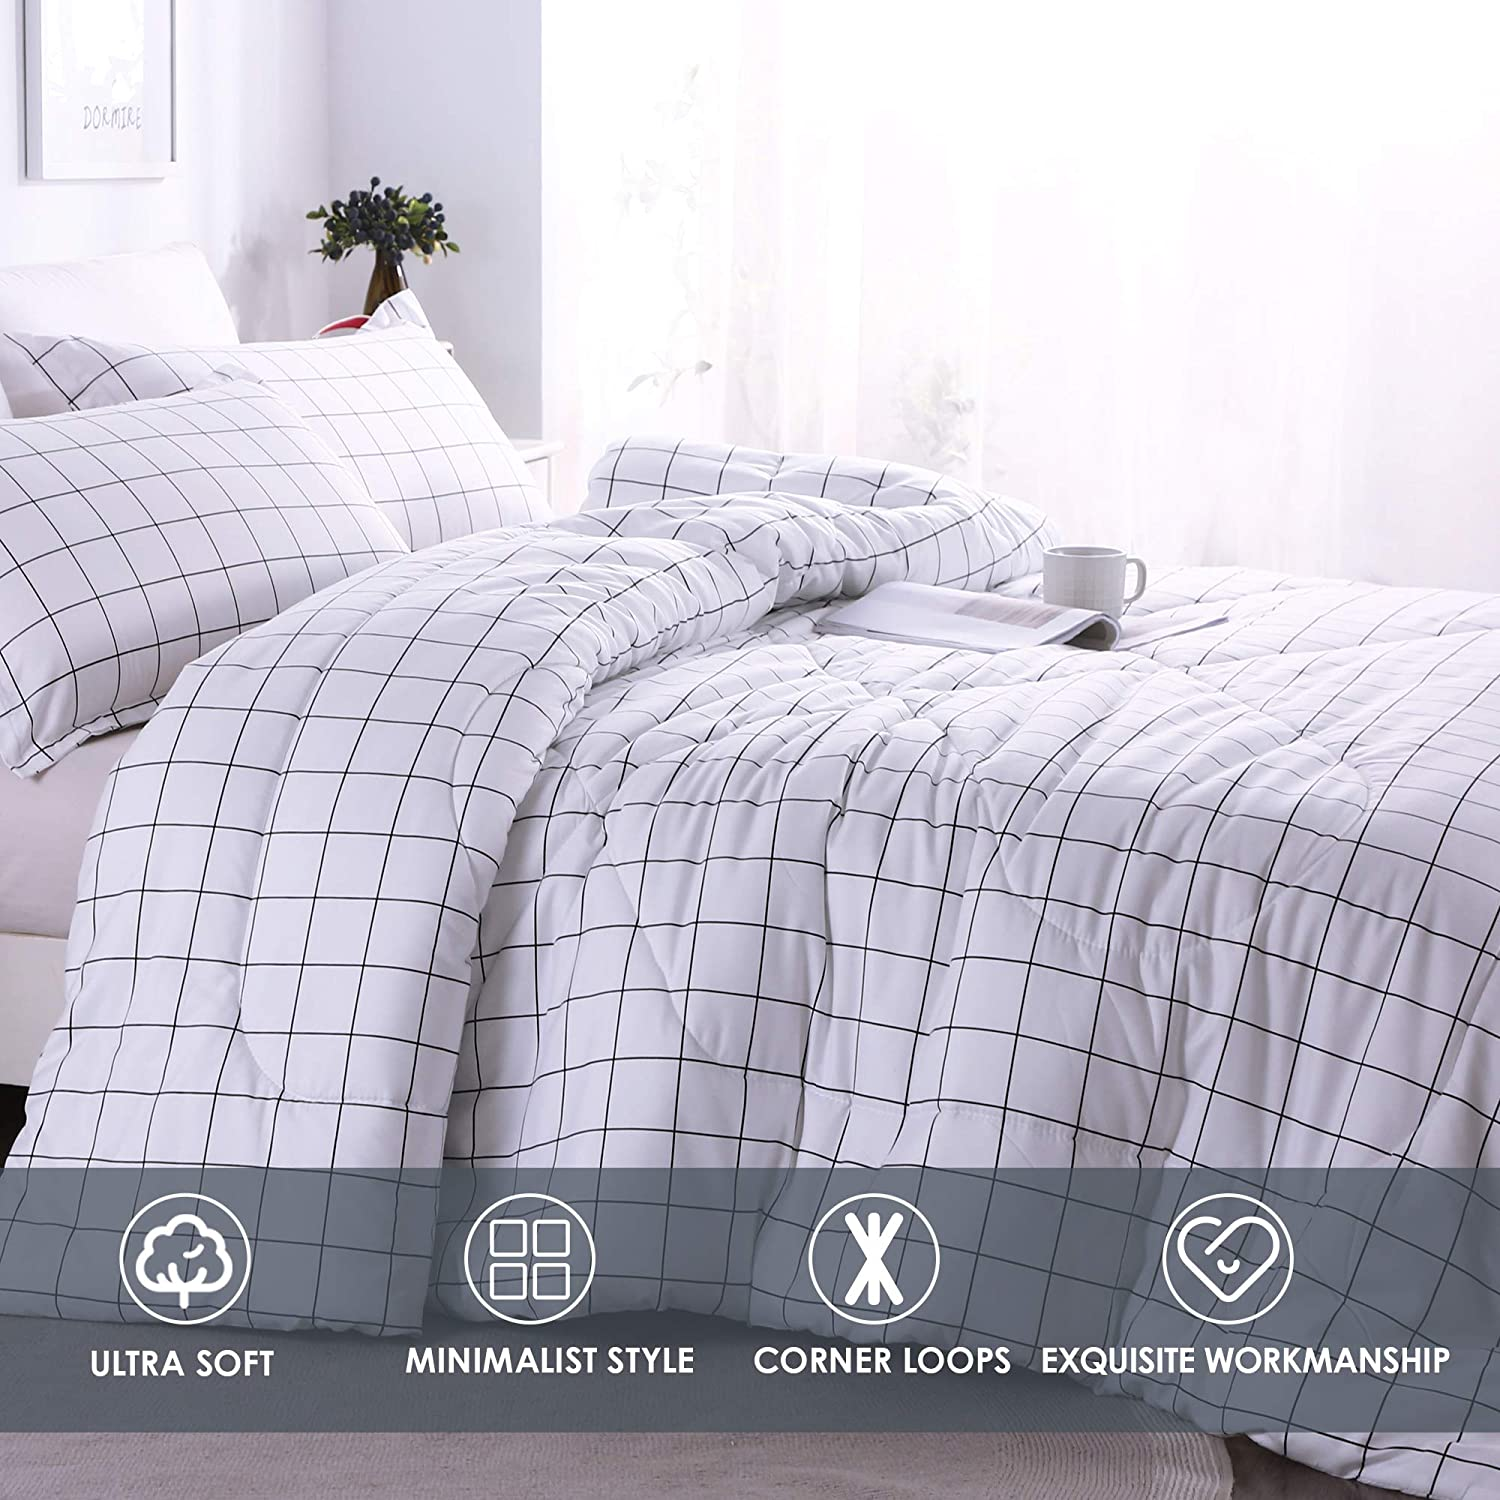 Andency Black White Grey Plaid Comforter Sets Twin 2 Pieces Soft Microfiber Buffalo Check Down Alternative Comforter Set 1 Gingham Comforter and 1 Pillowcase 66x90 Inch